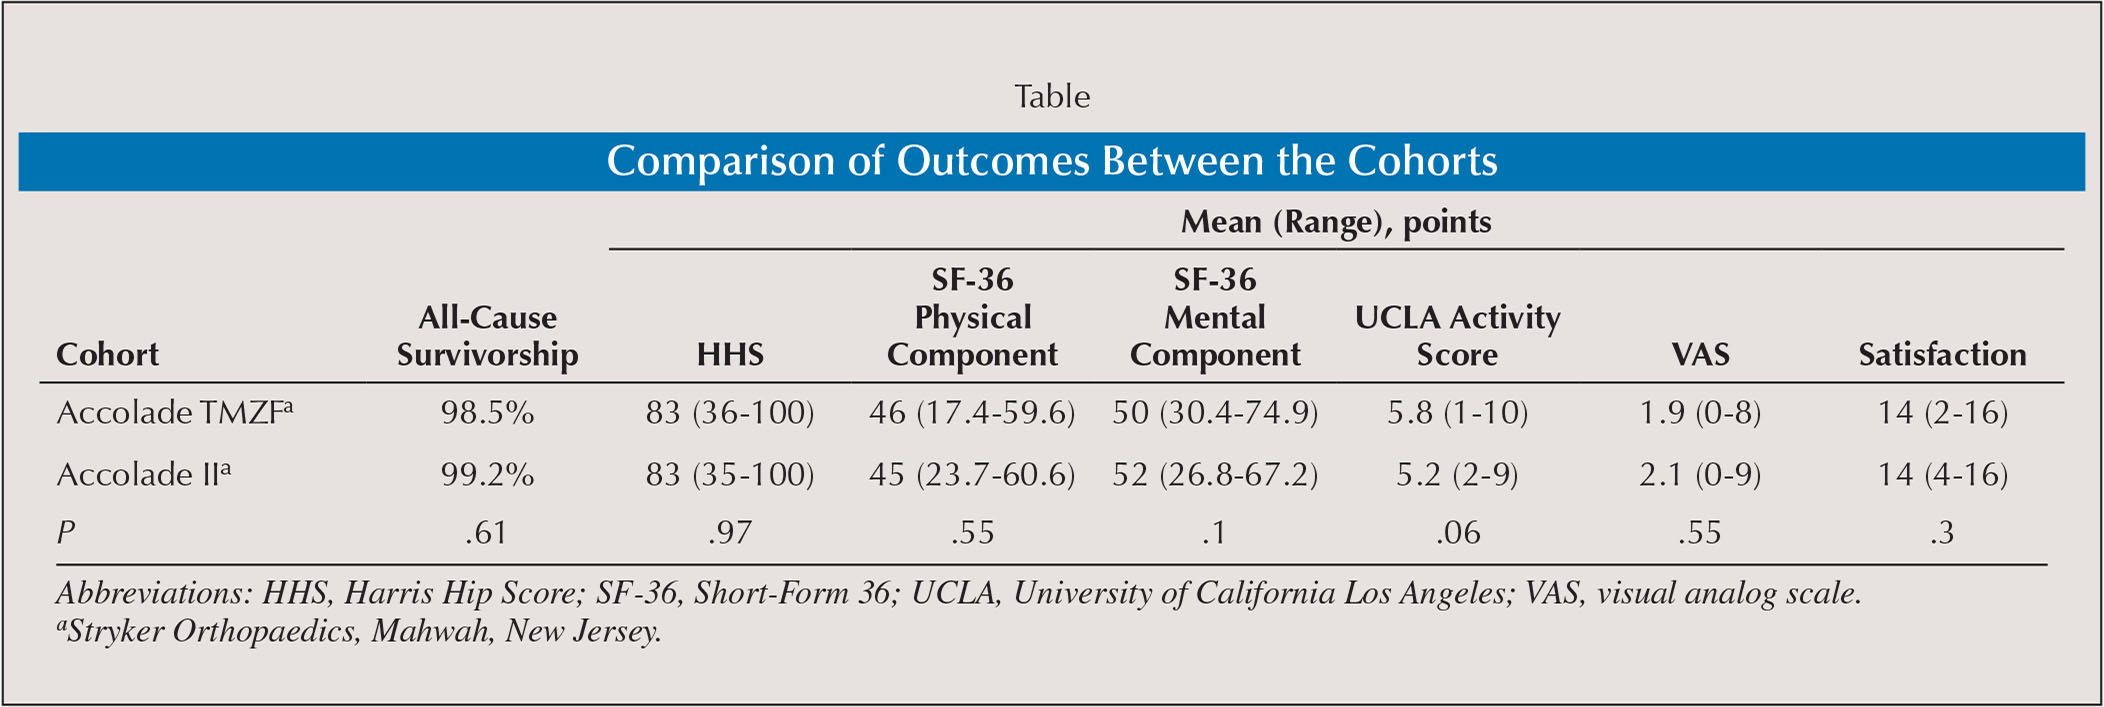 Comparison of Outcomes Between the Cohorts